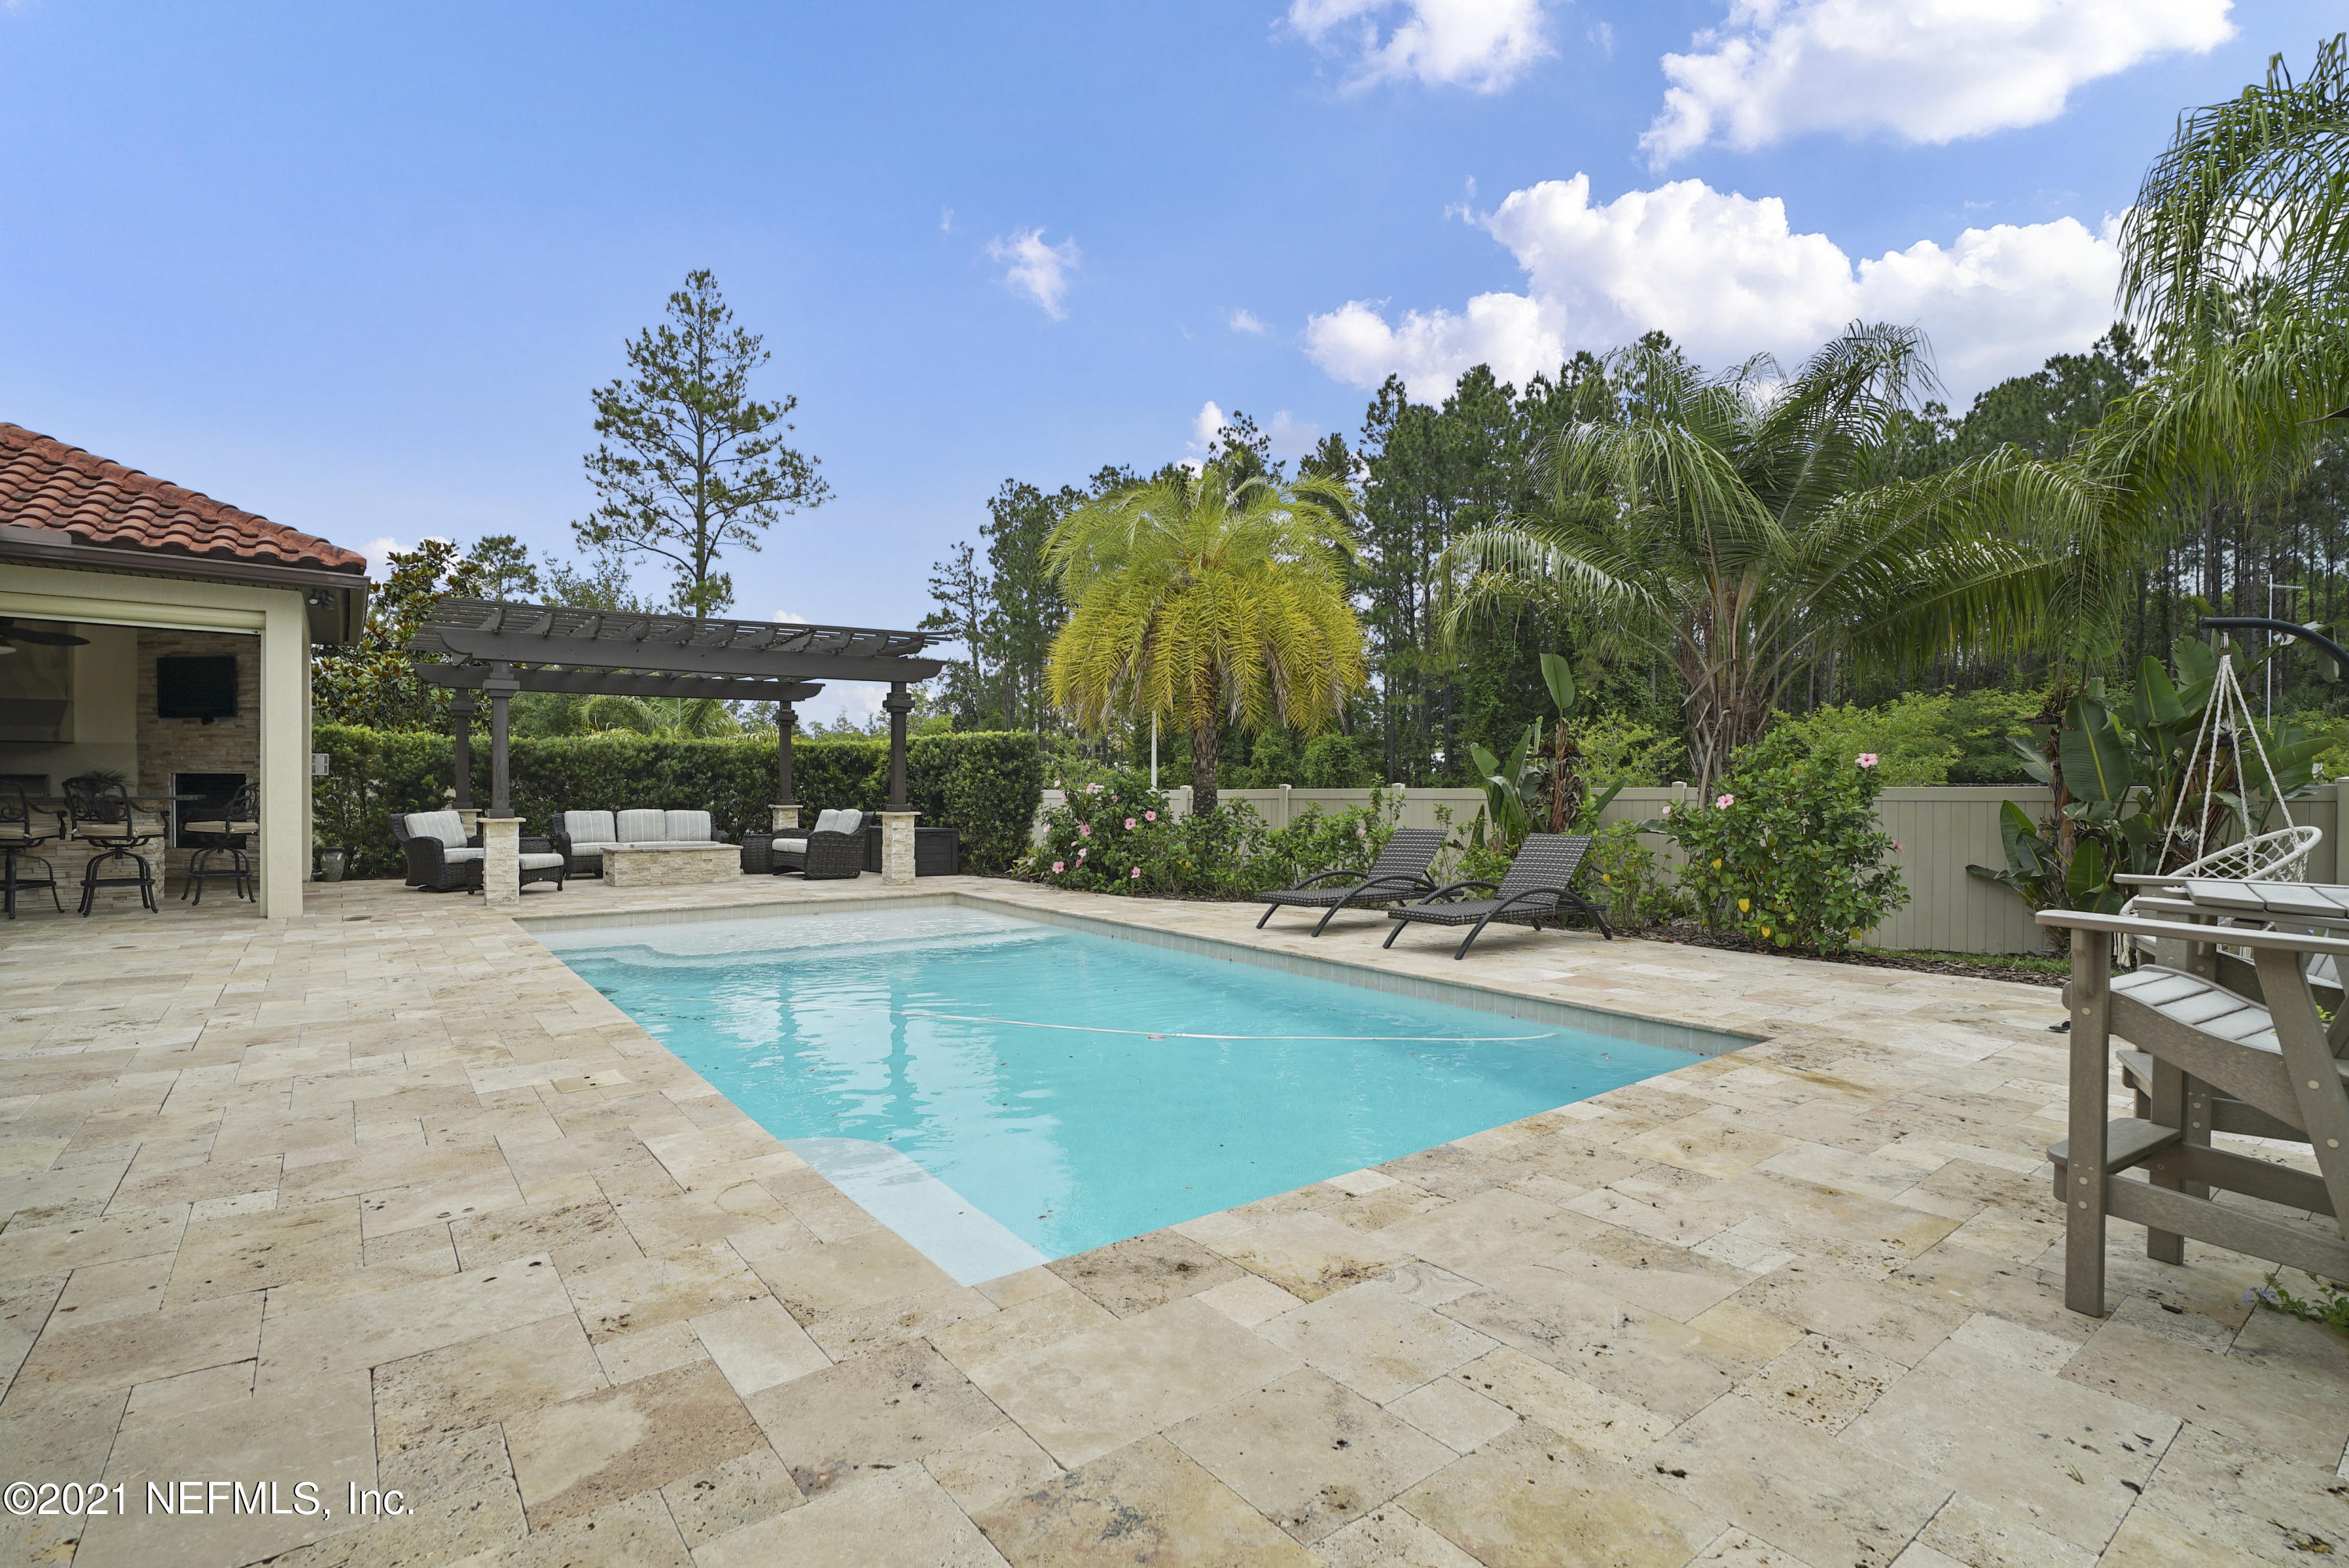 One of a kind, custom ICI built, POOL HOME in Nocatee's only gated 44 home community that is in close proximity to Valley Ridge Academy K-8 school. Courtyard entry with a unique, customized, split floor plan. This stunning home offers dramatic high ceilings which provide a grand entry foyer connecting the great room to the large kitchen and dining space. Enjoy entertaining inside and out -- custom wet bar and built in cabinetry in great room plus focal point fireplace. When you want to take the party outside, flow through the covered lanai and take a seat at the bi-level bar, grill out in your summer kitchen, and enjoy the fireplace and outdoor TV! Pool with travertine deck, pergola and gas fire pit. Covered sitting area with motorized, retractable screen. Master enclave with seating area plus large master bath, dual closets with custom organizer system and private access to the pool. Large windows beaming with tons of natural light throughout the home. 4 additional guest rooms, 2 guest baths (one ensuite) and additional dedicated office space with cabana bath access. Powder room for guest convenience. Lots of extra in this amazing home, including Spanish-style tile roof, details like crown moulding, rounded corners, surround sound system, plantation shutters throughout, built in bench seating, 10ft doors, laundry room with utility sink and cabinetry. Please see documents for additional info.